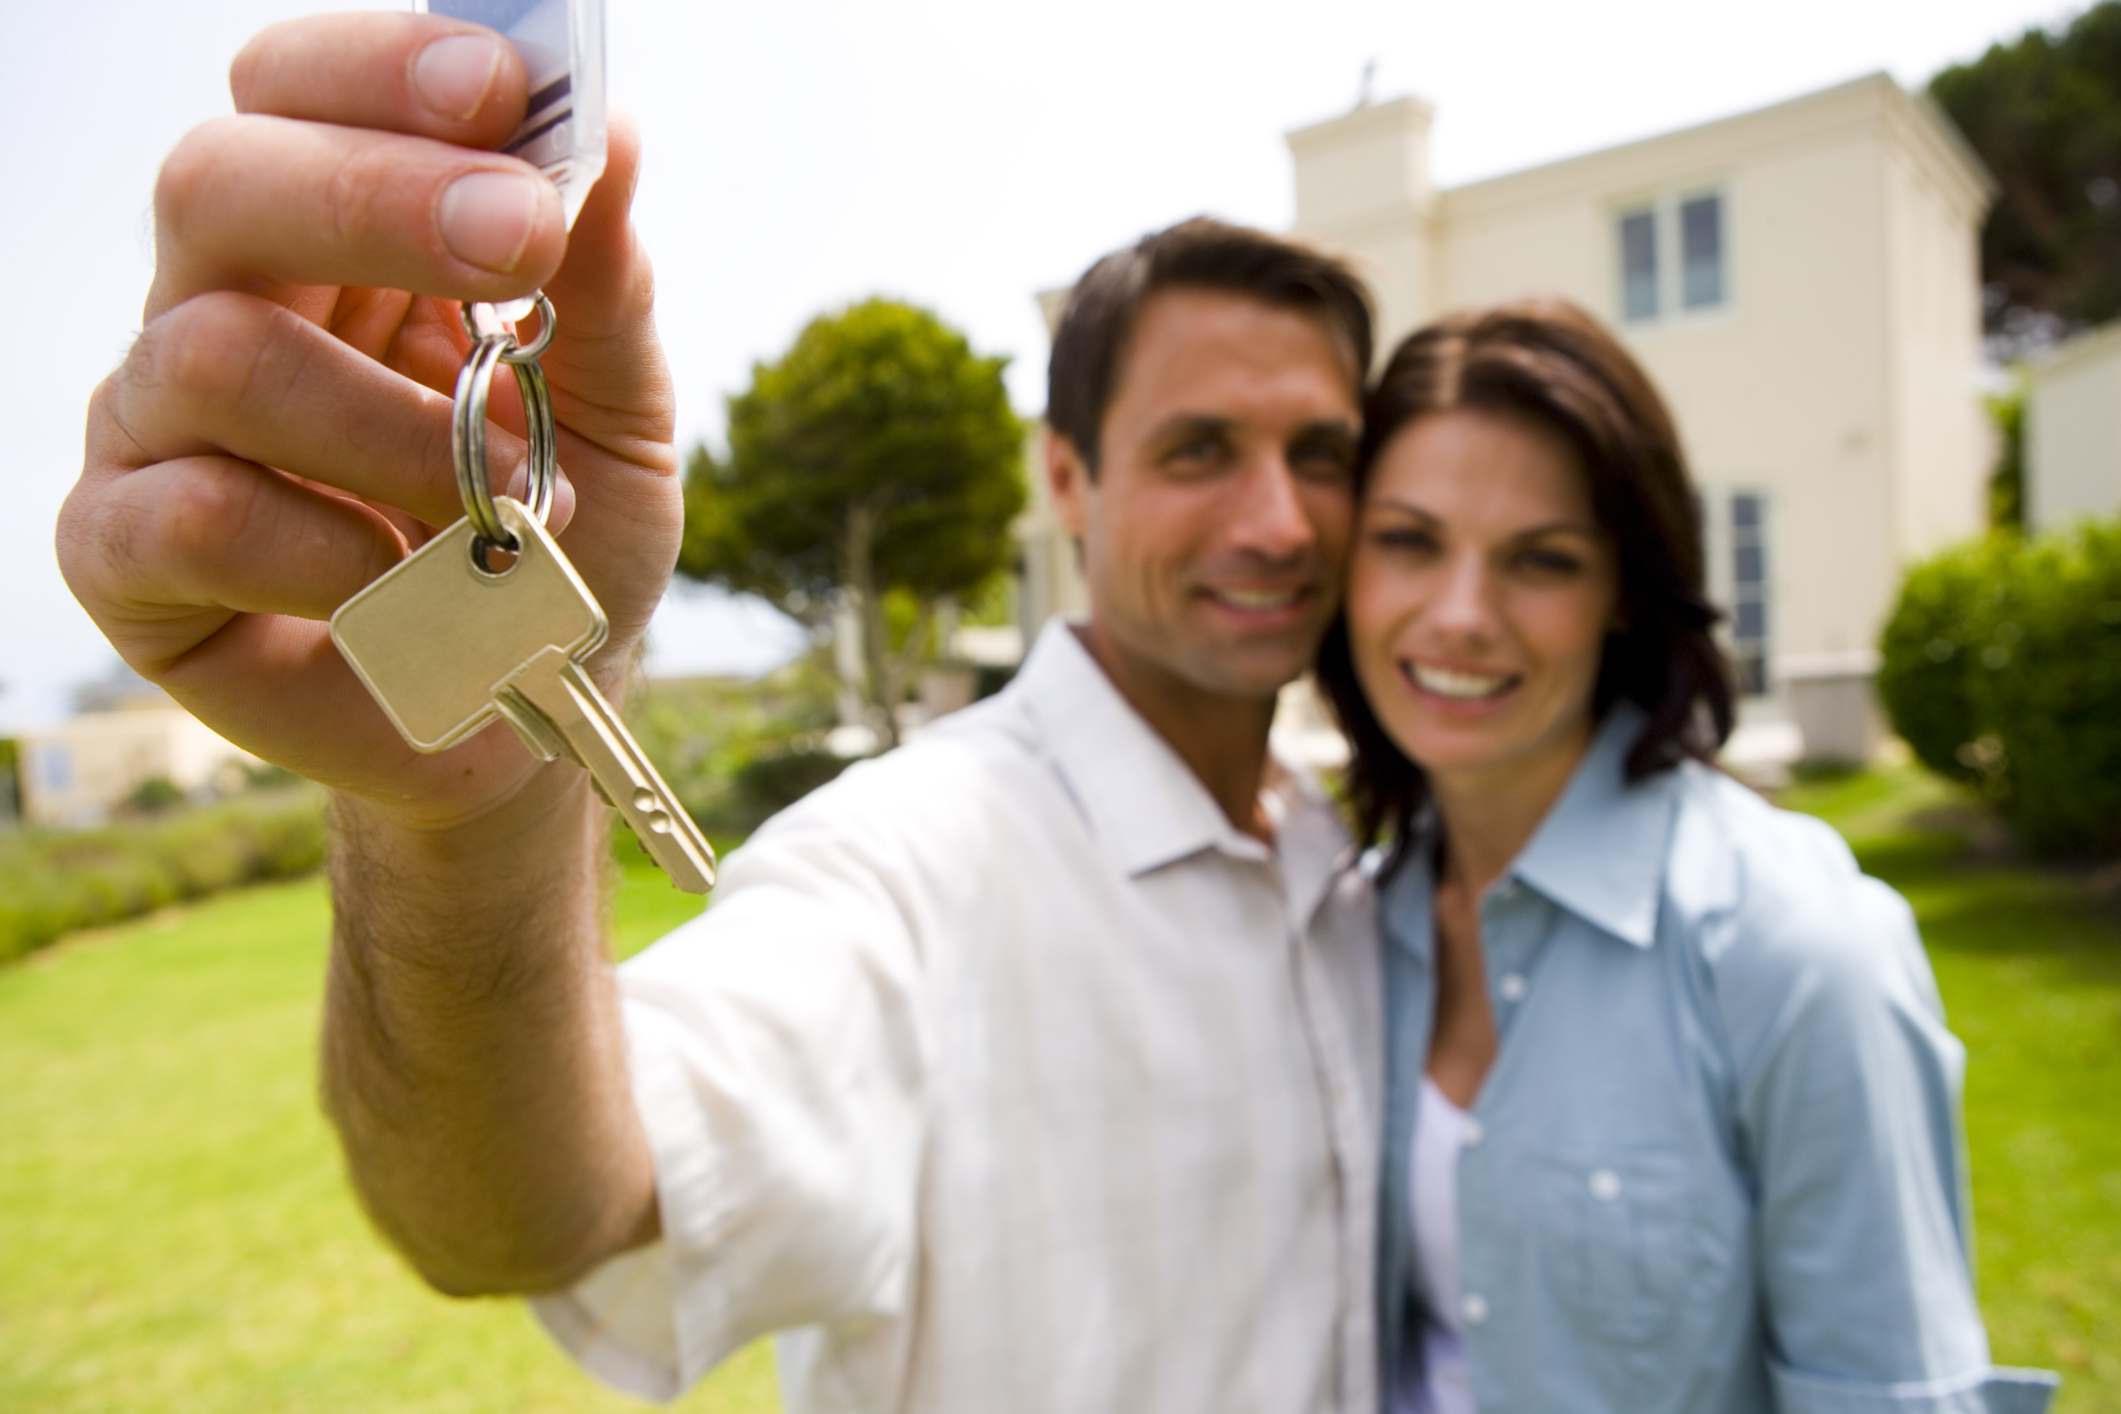 Is it Legal to Make a Duplicate Key for My Apartment? | Home